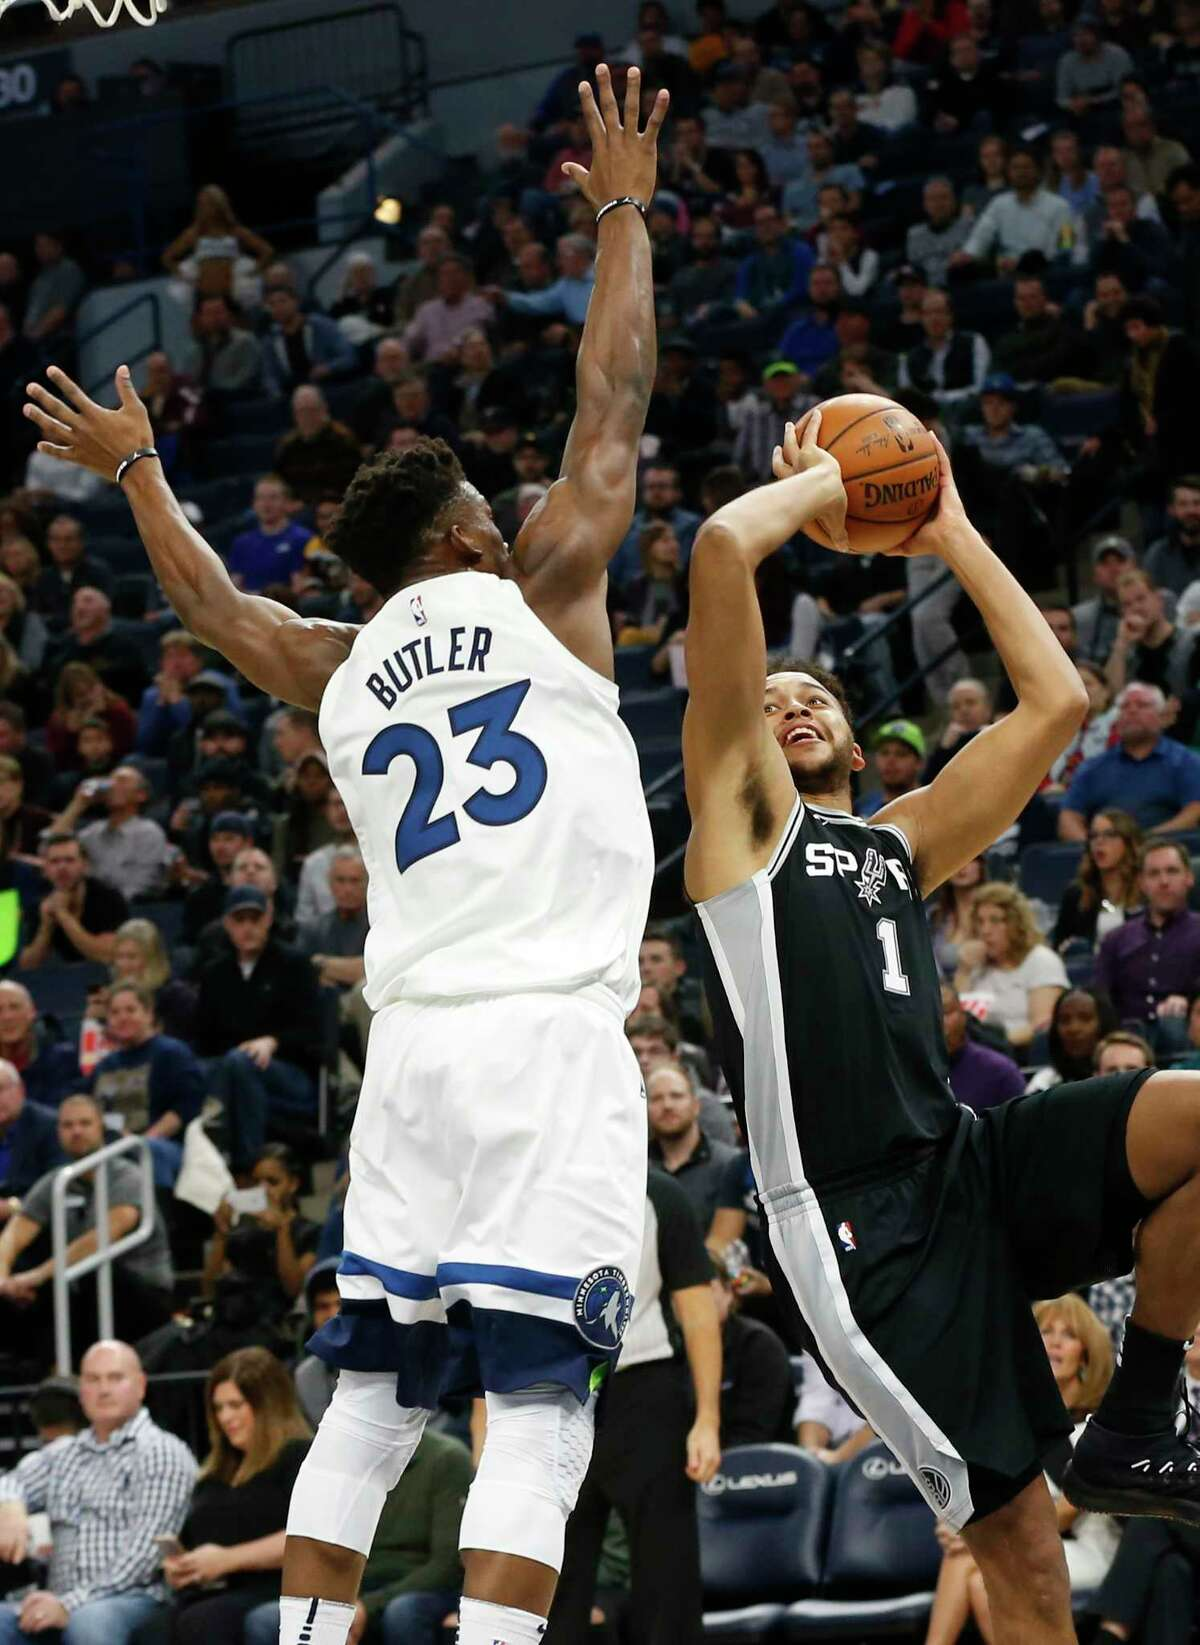 San Antonio Spurs' Kyle Anderson, right, shoots as Minnesota Timberwolves' Jimmy Butler defends in the first half of an NBA basketball game Wednesday, Nov. 15, 2017 in Minneapolis. (AP Photo/Jim Mone)